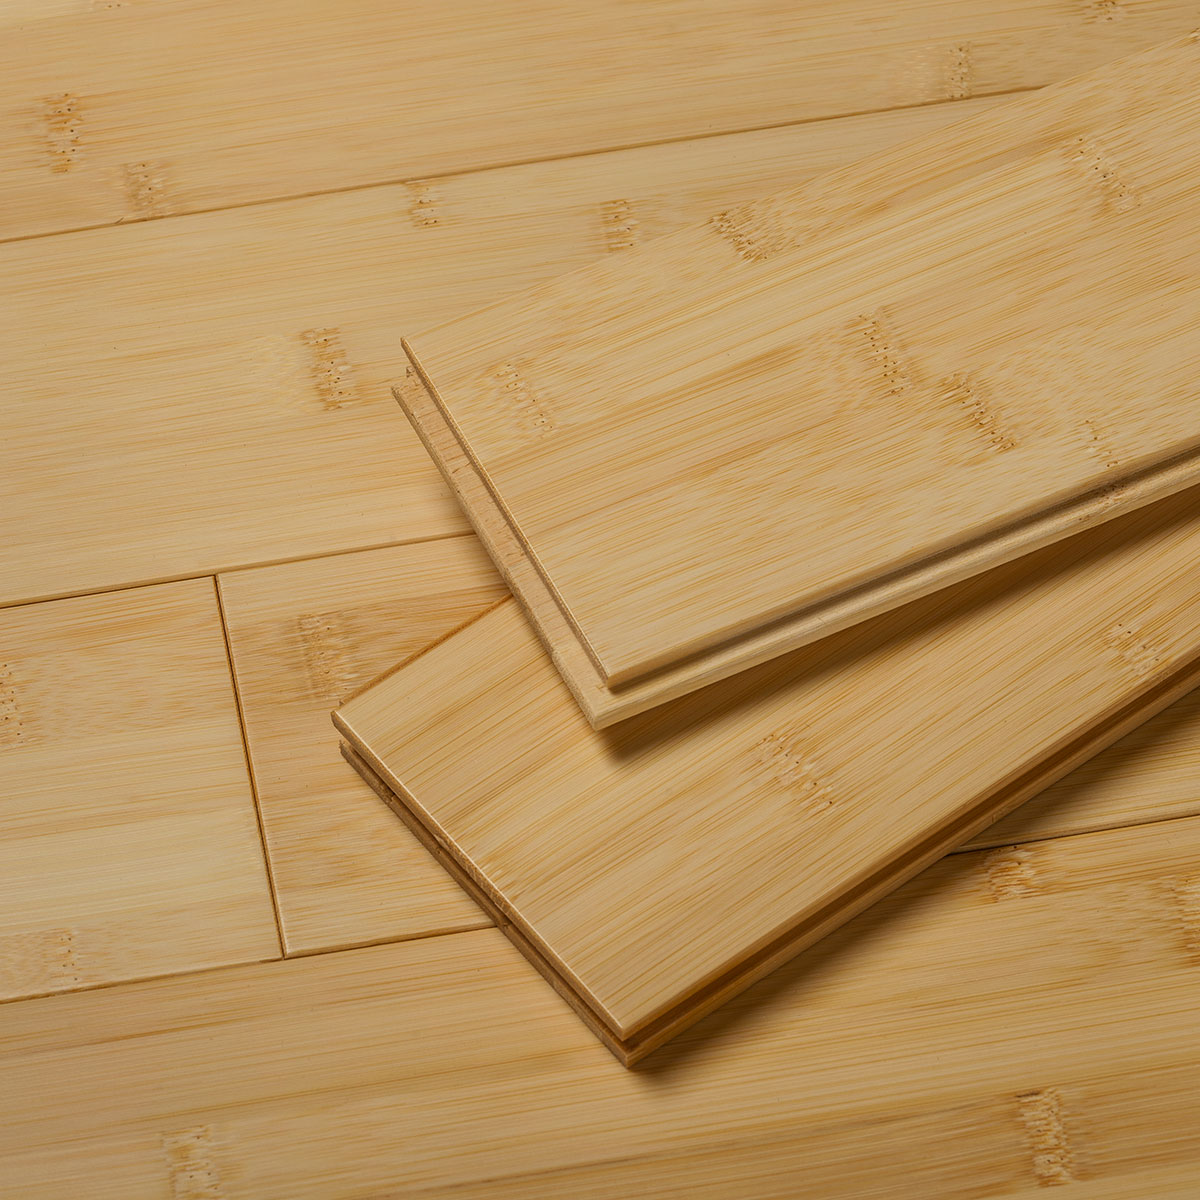 Natural Flat Grain Bamboo Flooring